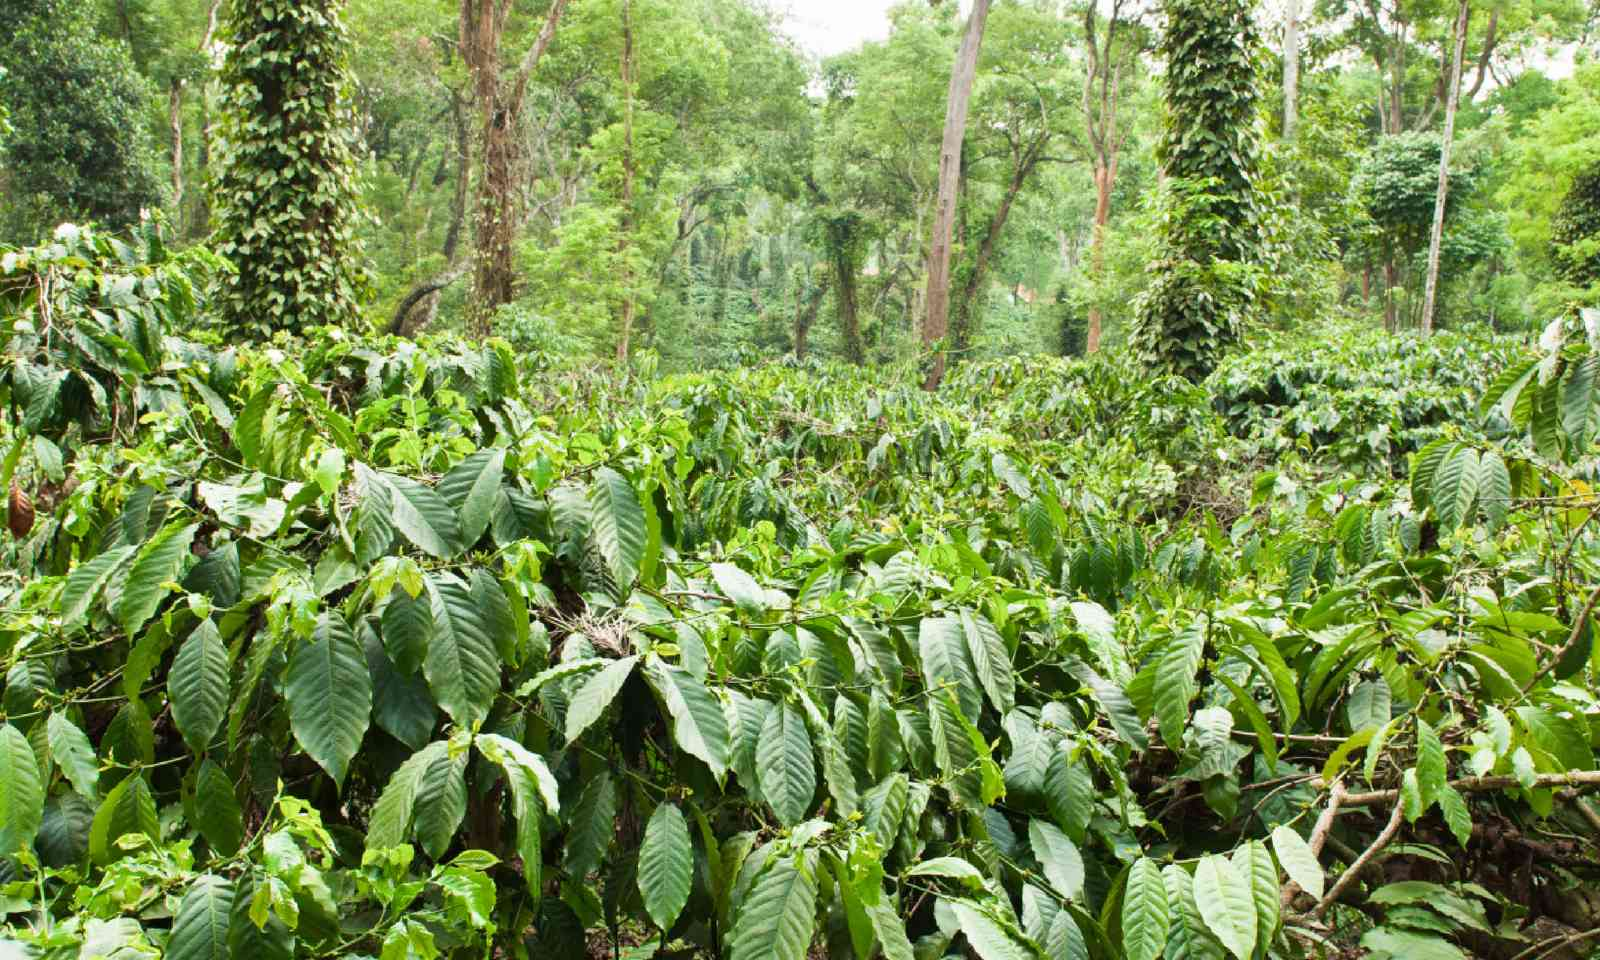 Coffee plantation in Coorg, India (Shutterstock)